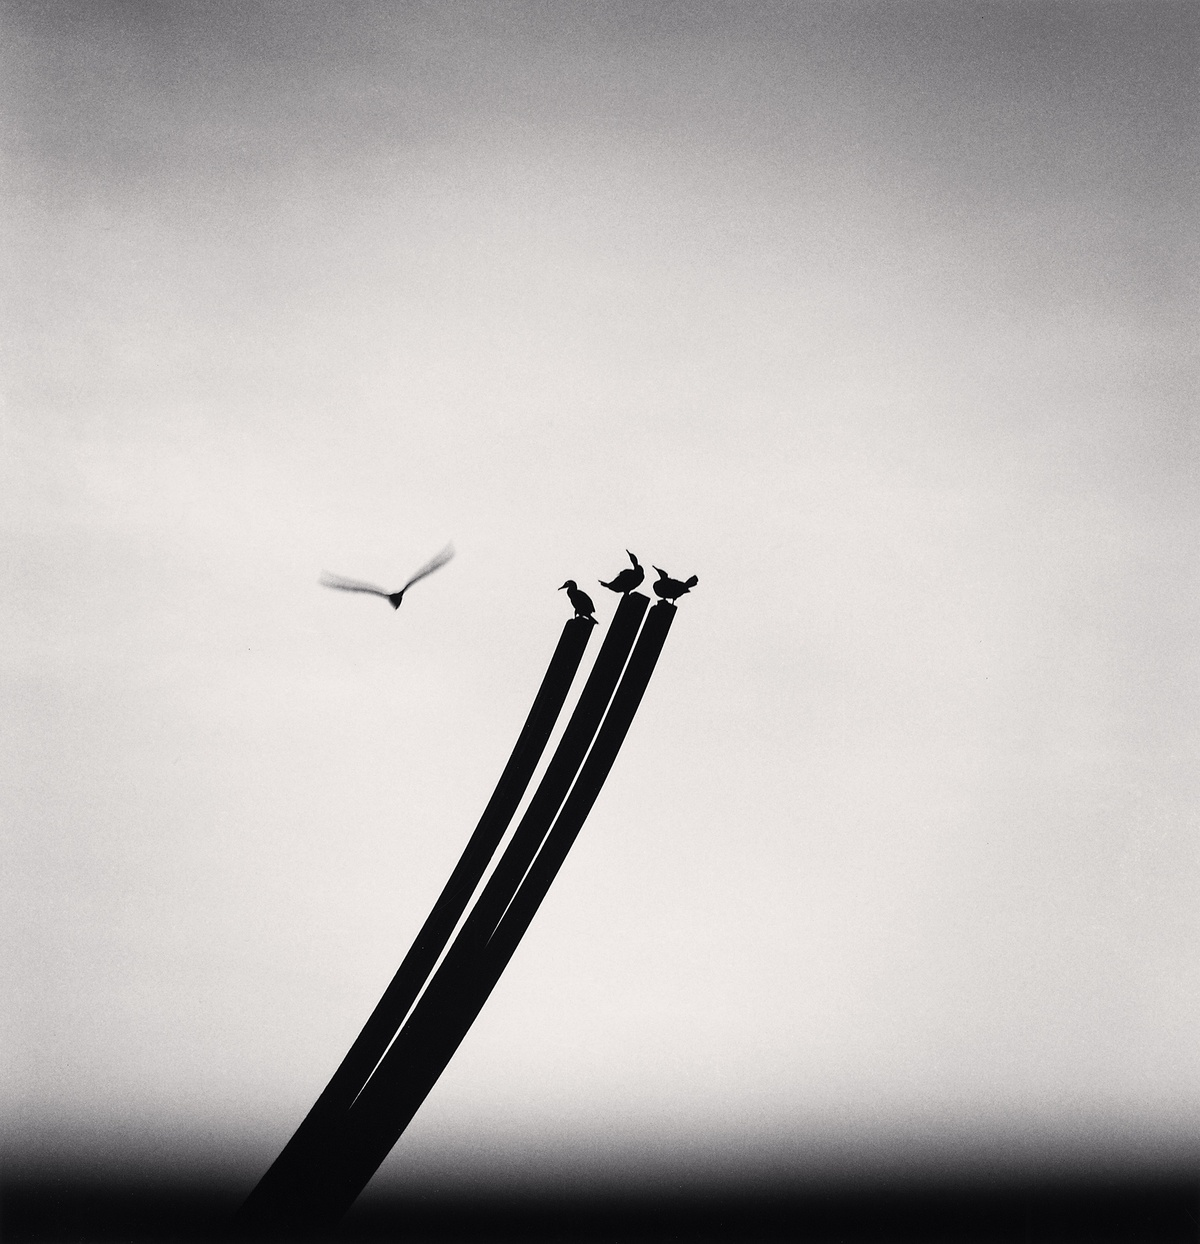 Michael Kenna Four Birds, St. Nazaire, France 2000 Sepia Toned Silver Gelatin Print From An Edition Of 45 8 x 8 Inches